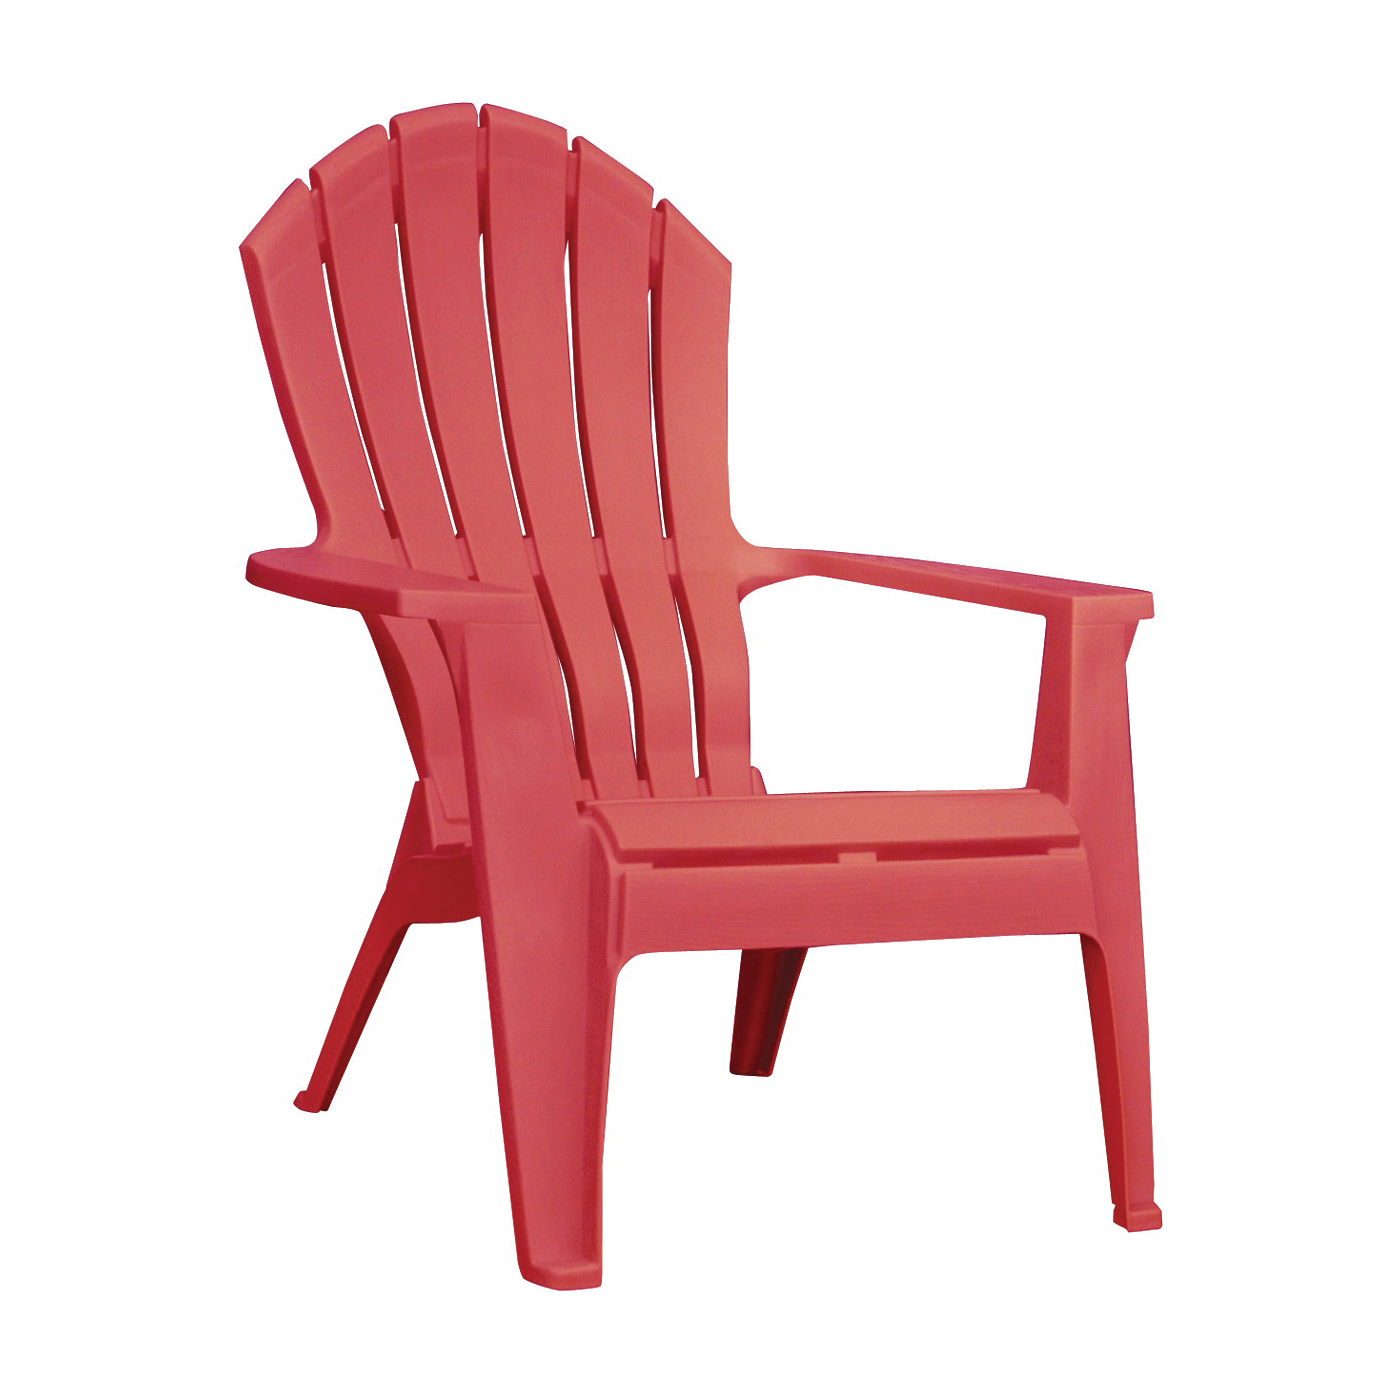 Picture of Adams RealComfort 8371-26-3700 Adirondack Chair, 30 in W, 32-1/2 in D, 37-1/2 in H, Polypropylene Frame